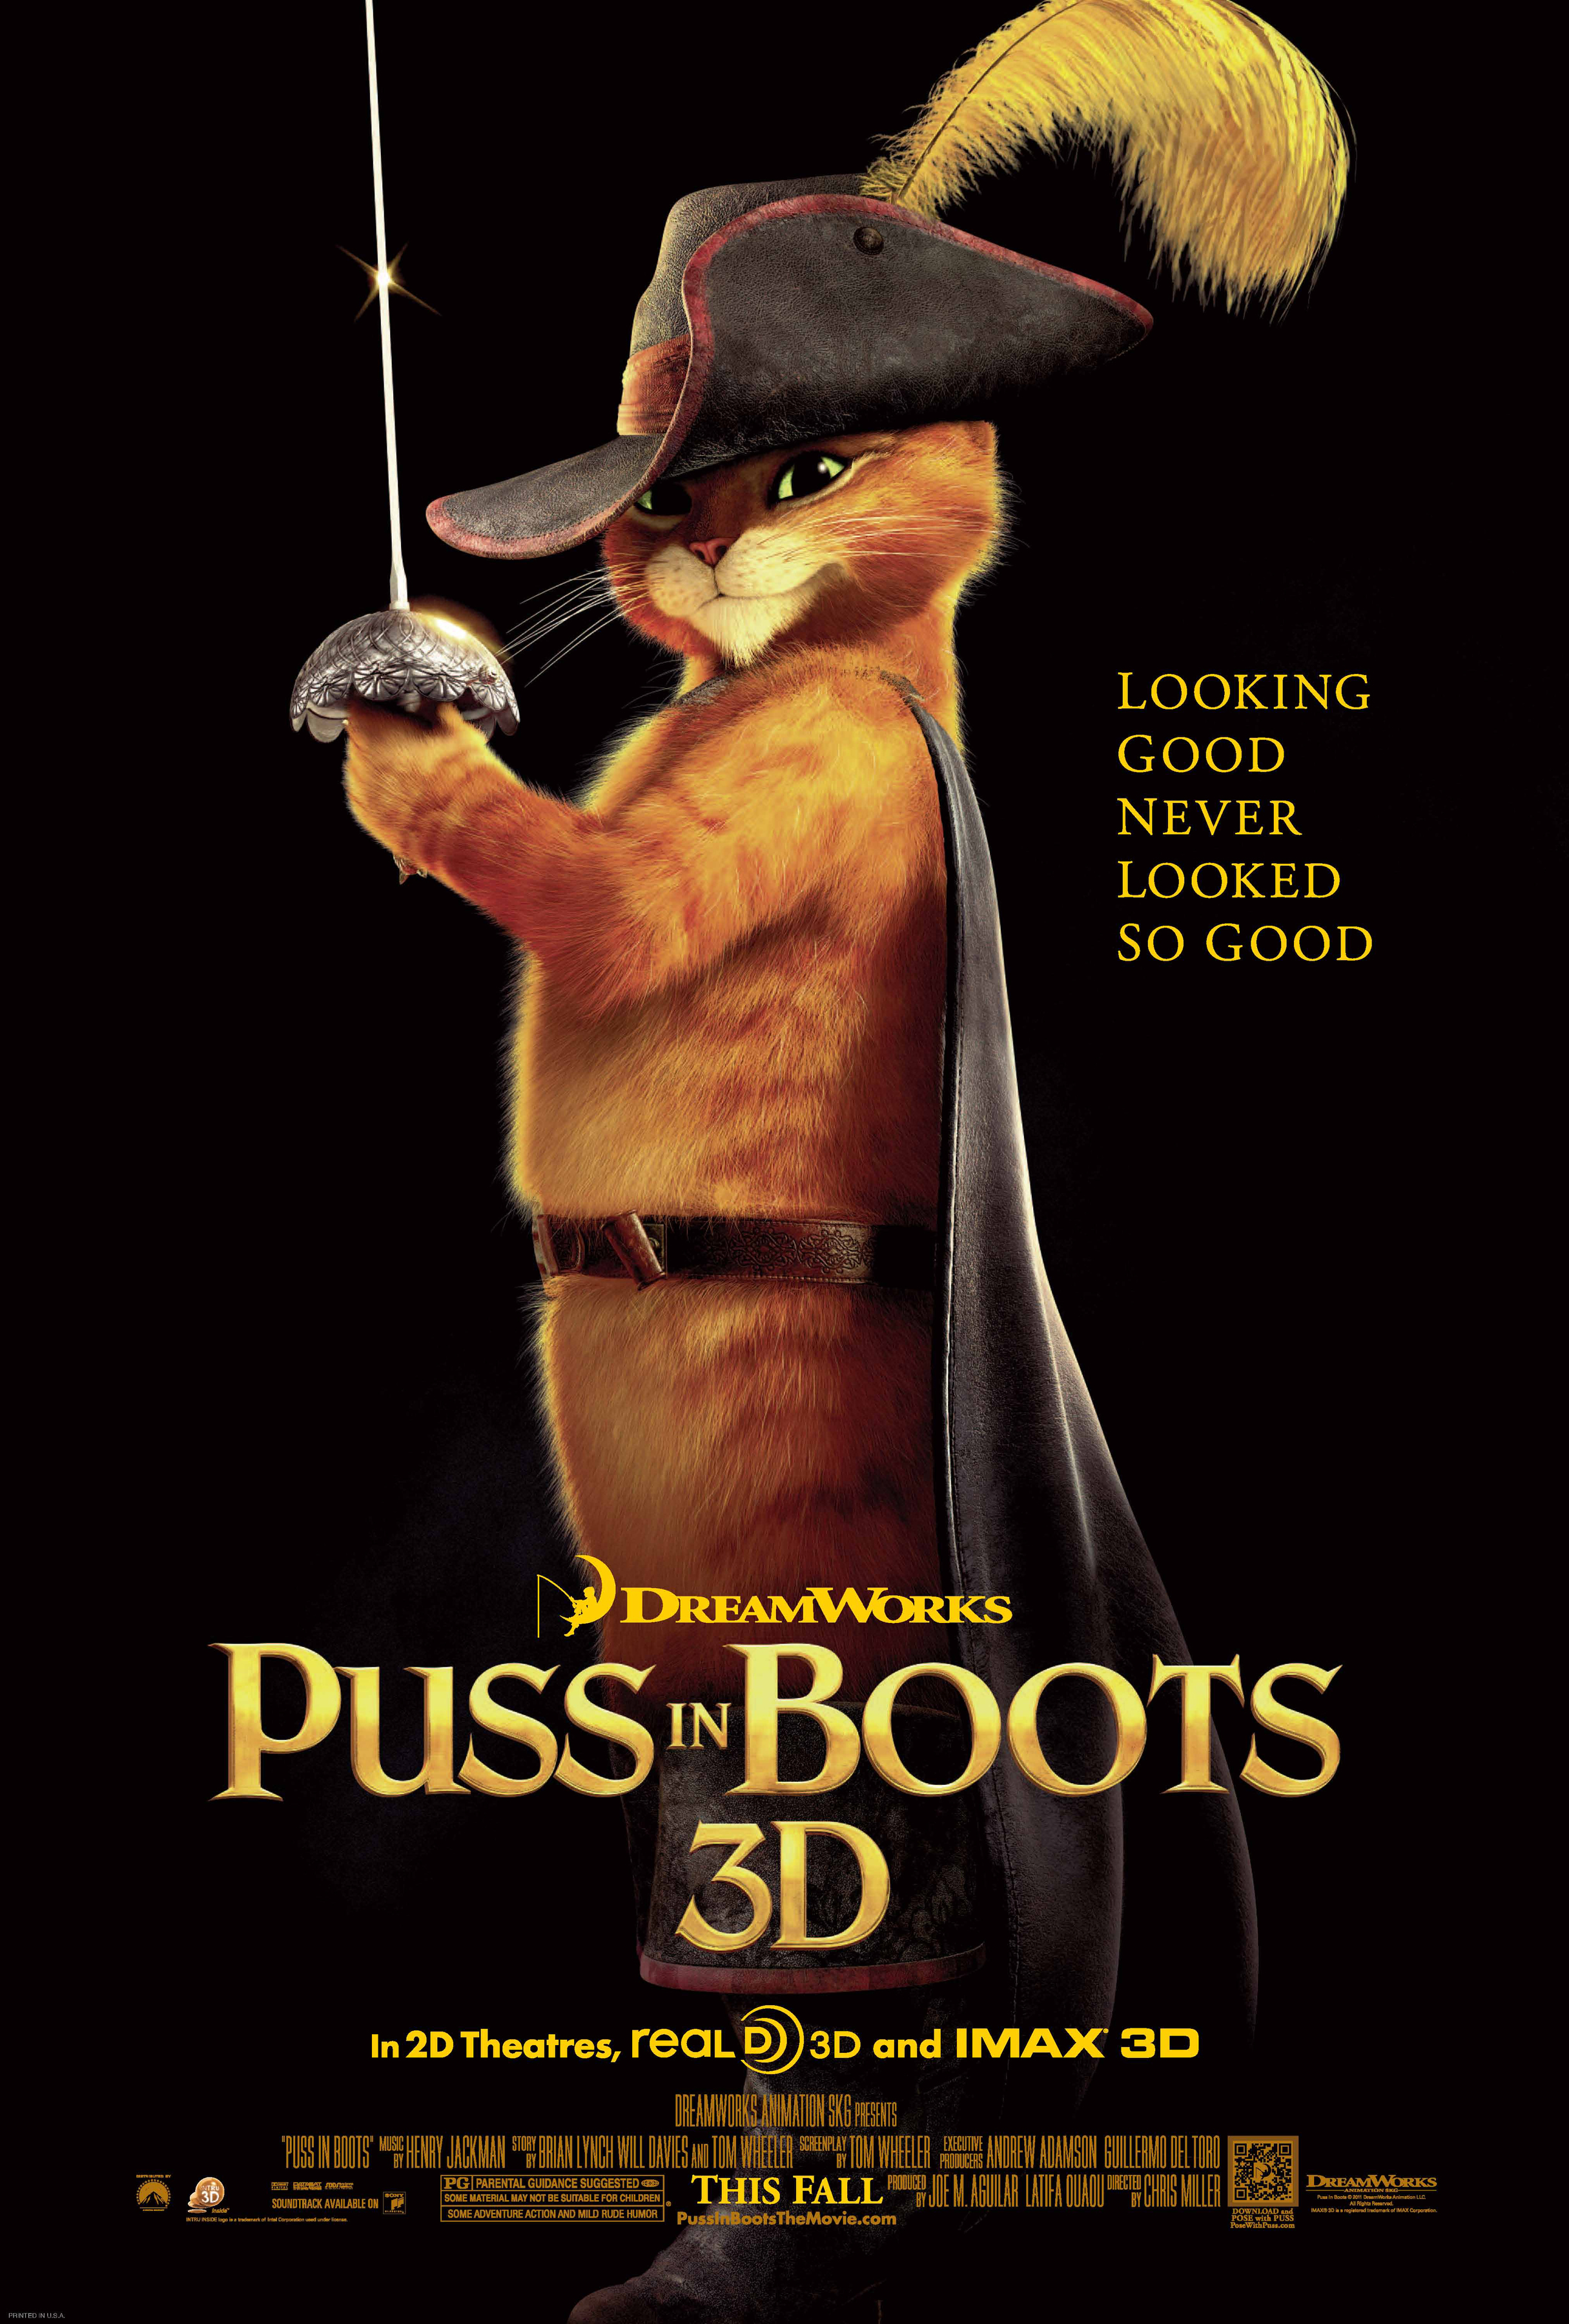 Puss in Boots (film)